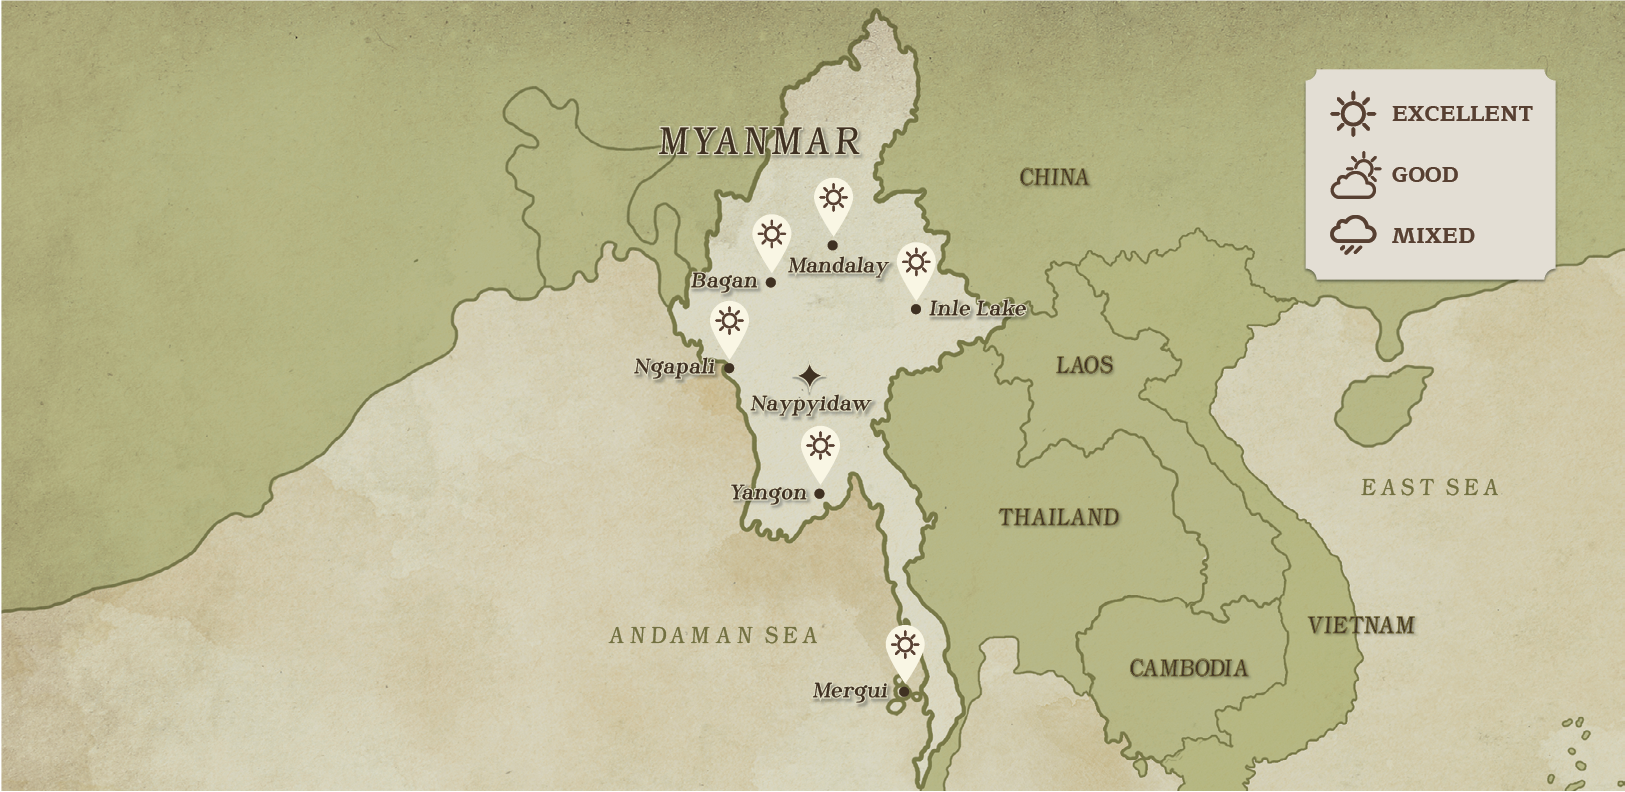 Myanmar | Trails of Indochina